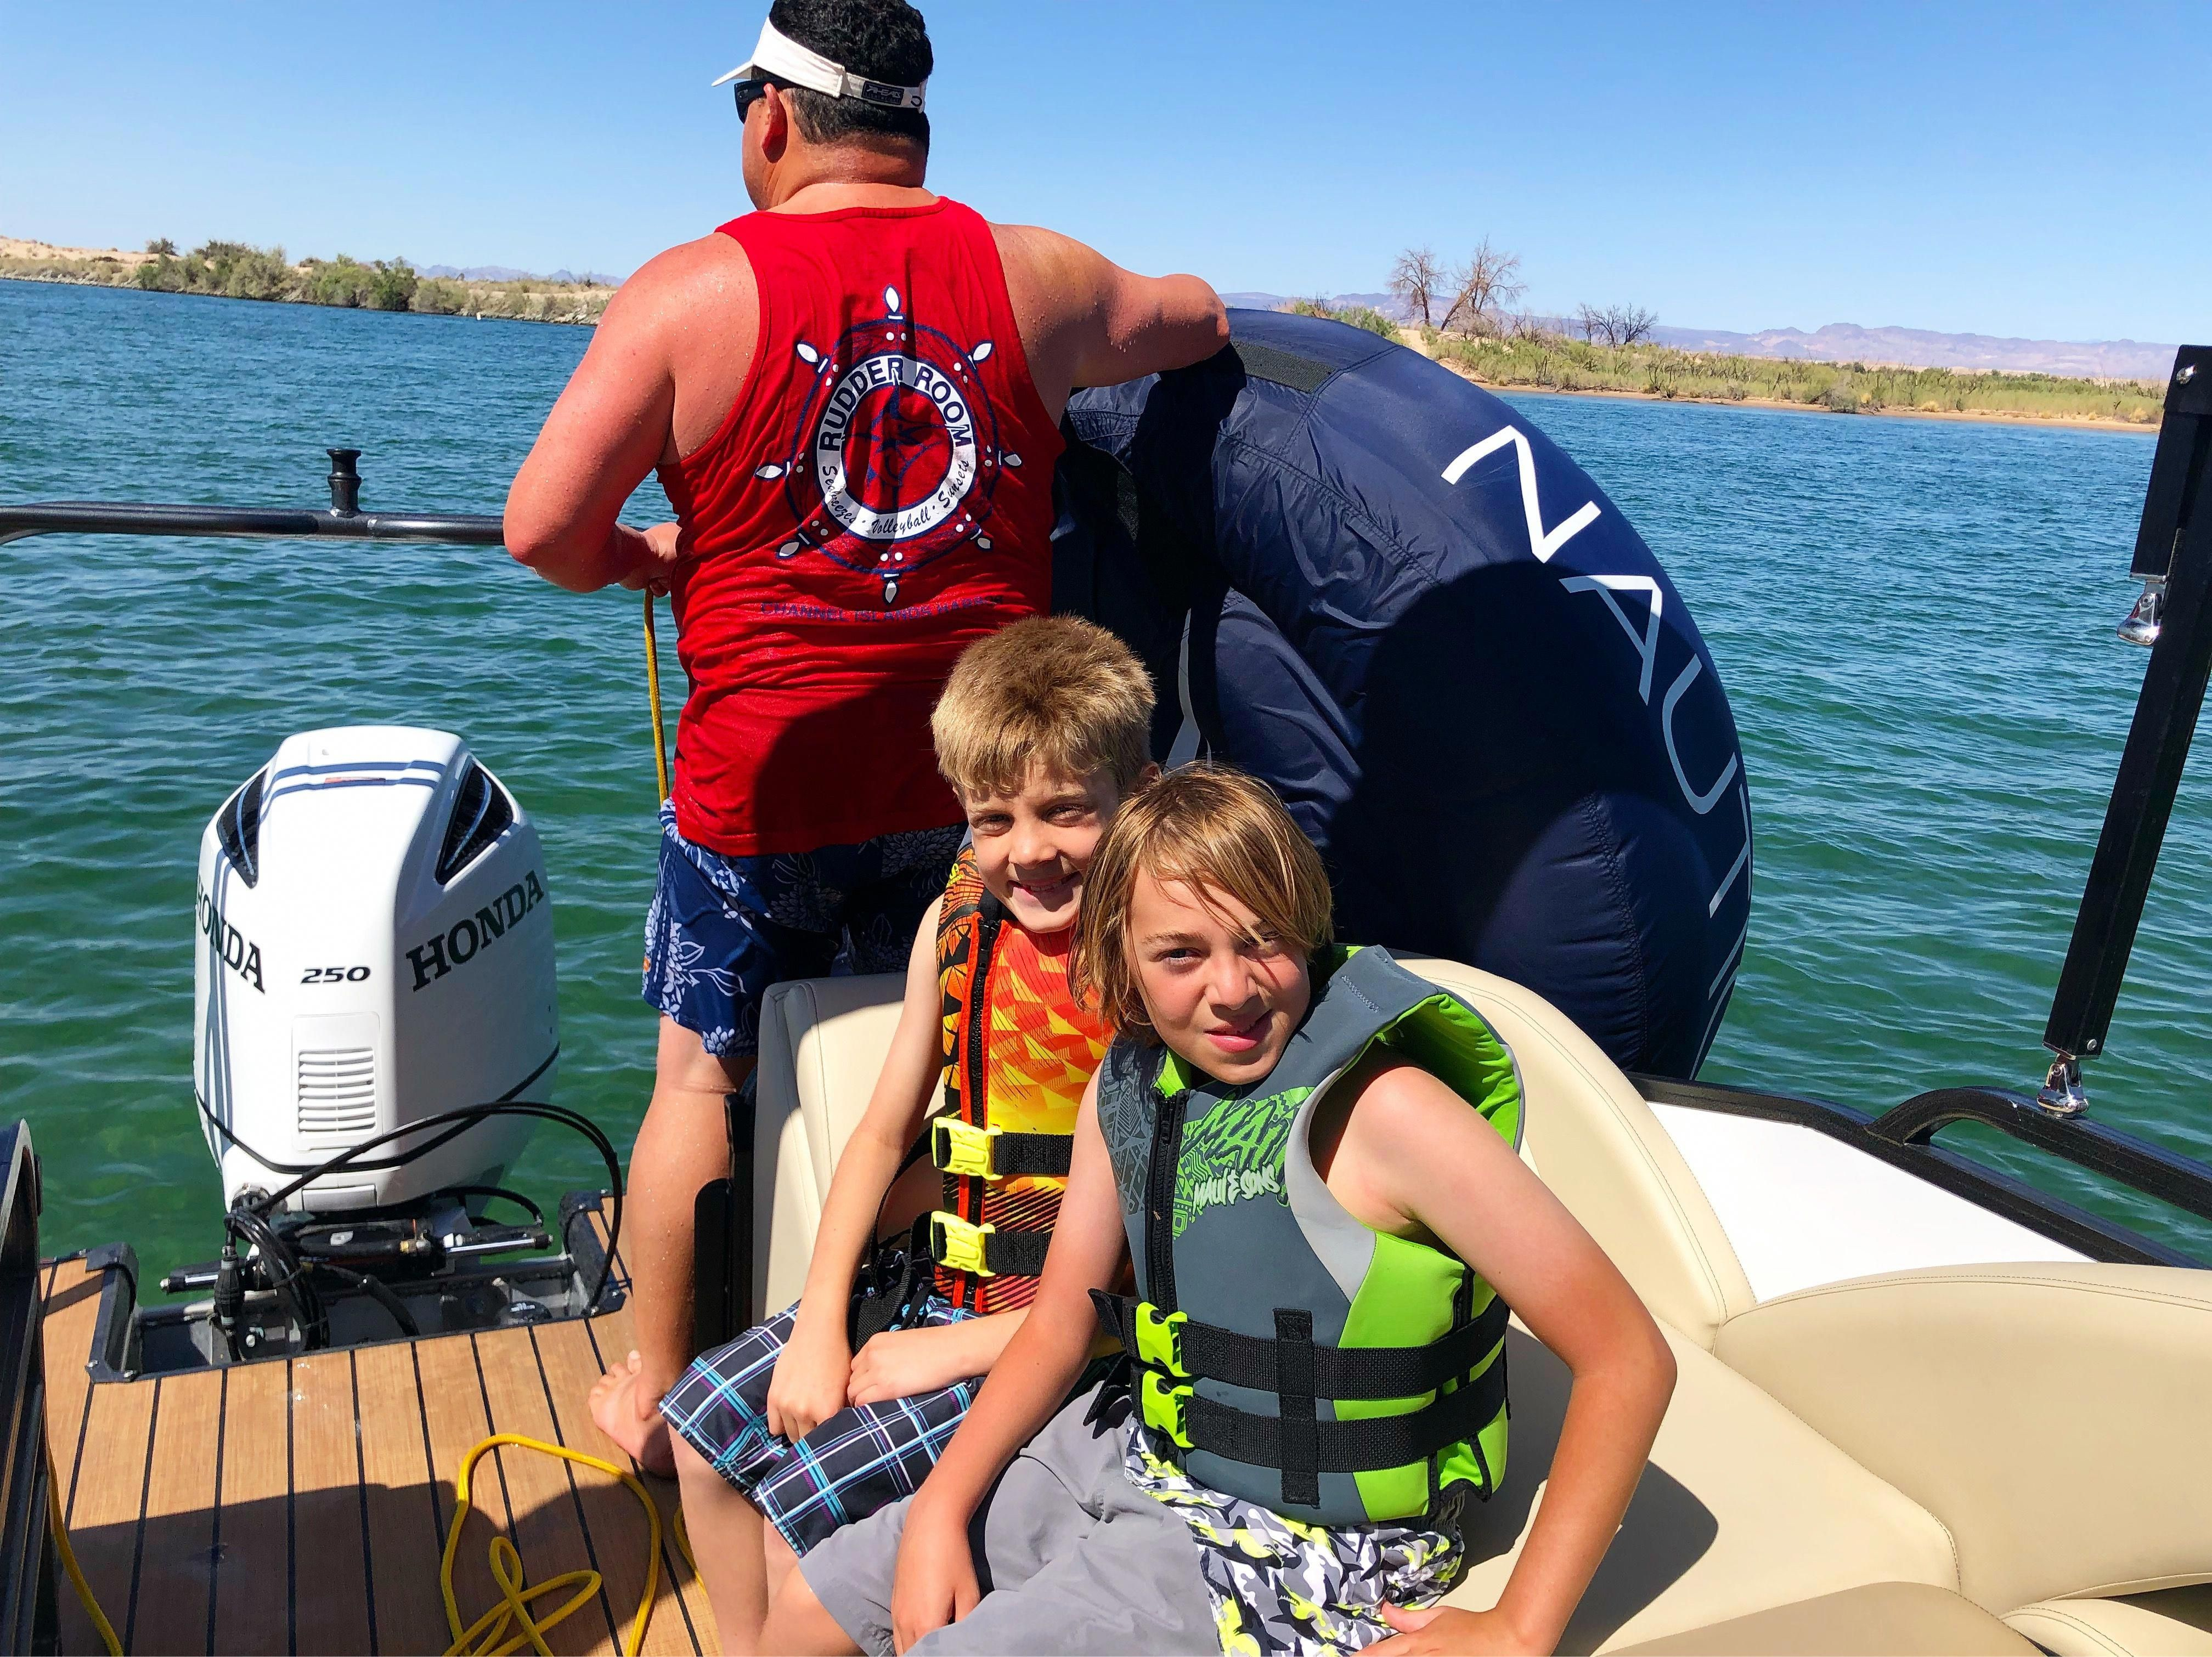 Lake havasu boating safety rules and regulations in 2020